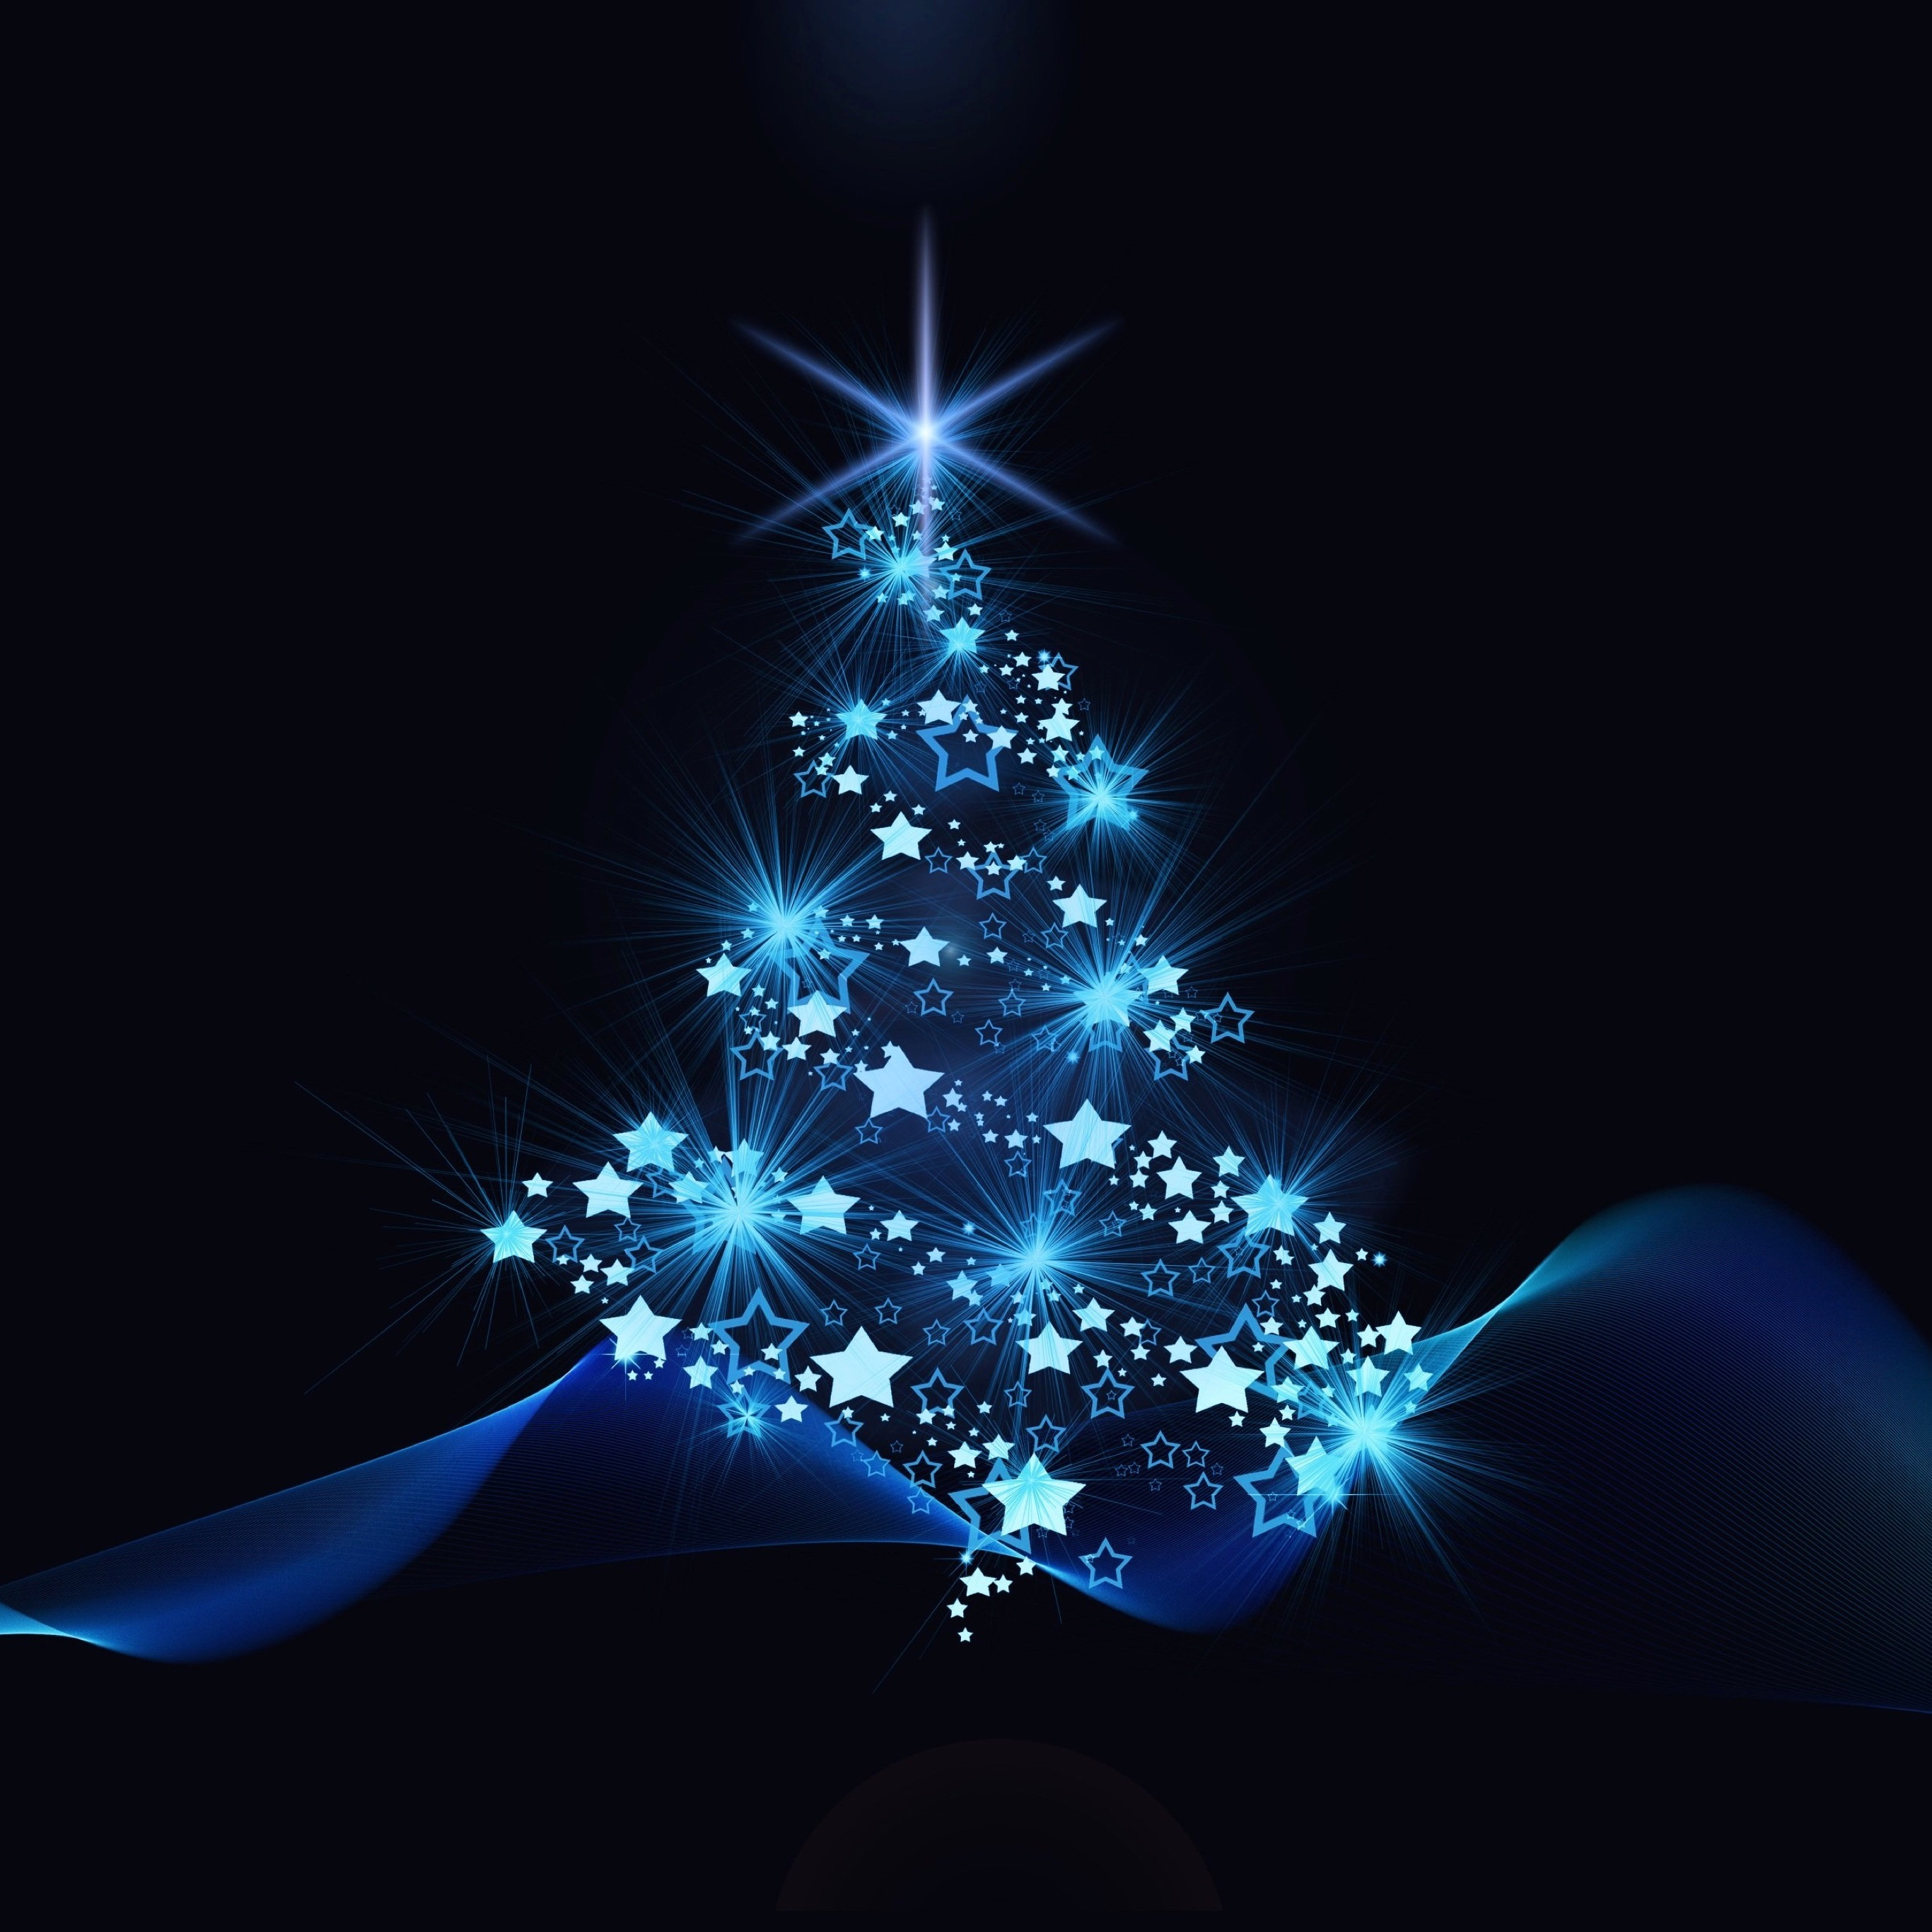 Wallpaper Weekends Christmas Tree Iphone And Ipad Wallpapers